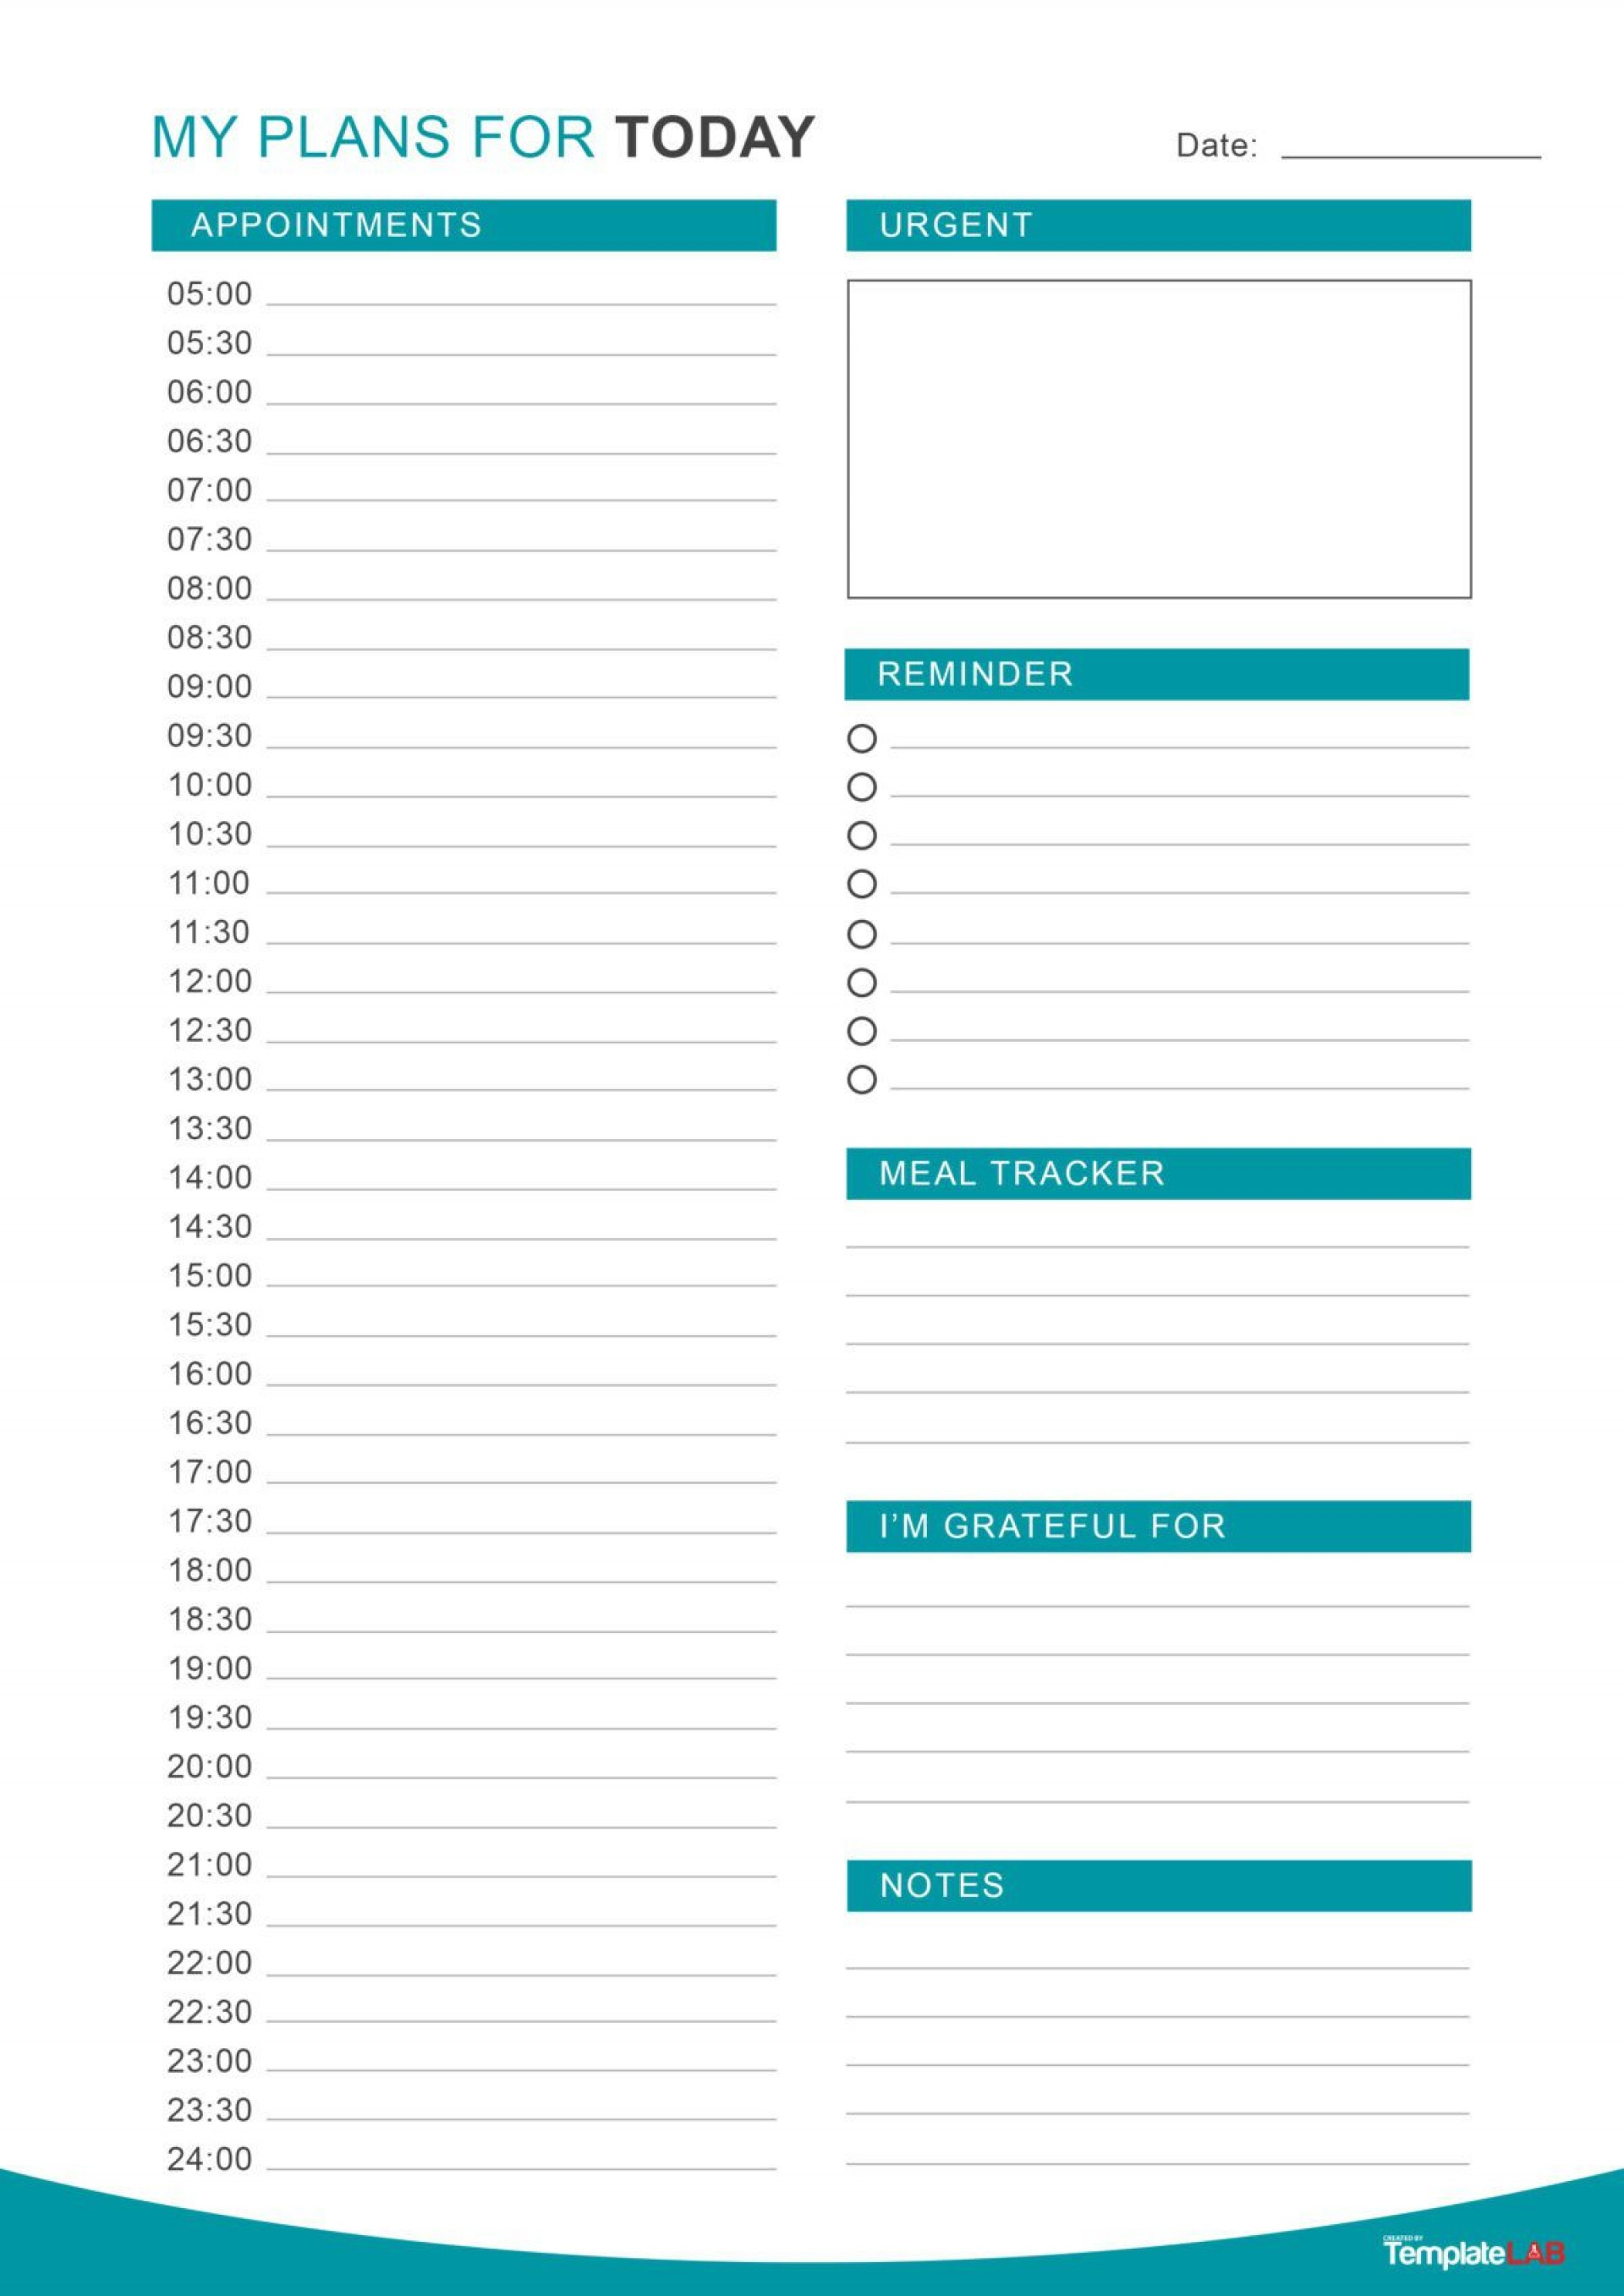 006 Astounding Time Management Schedule Template Picture  Plan For Student Calendar Excel1920